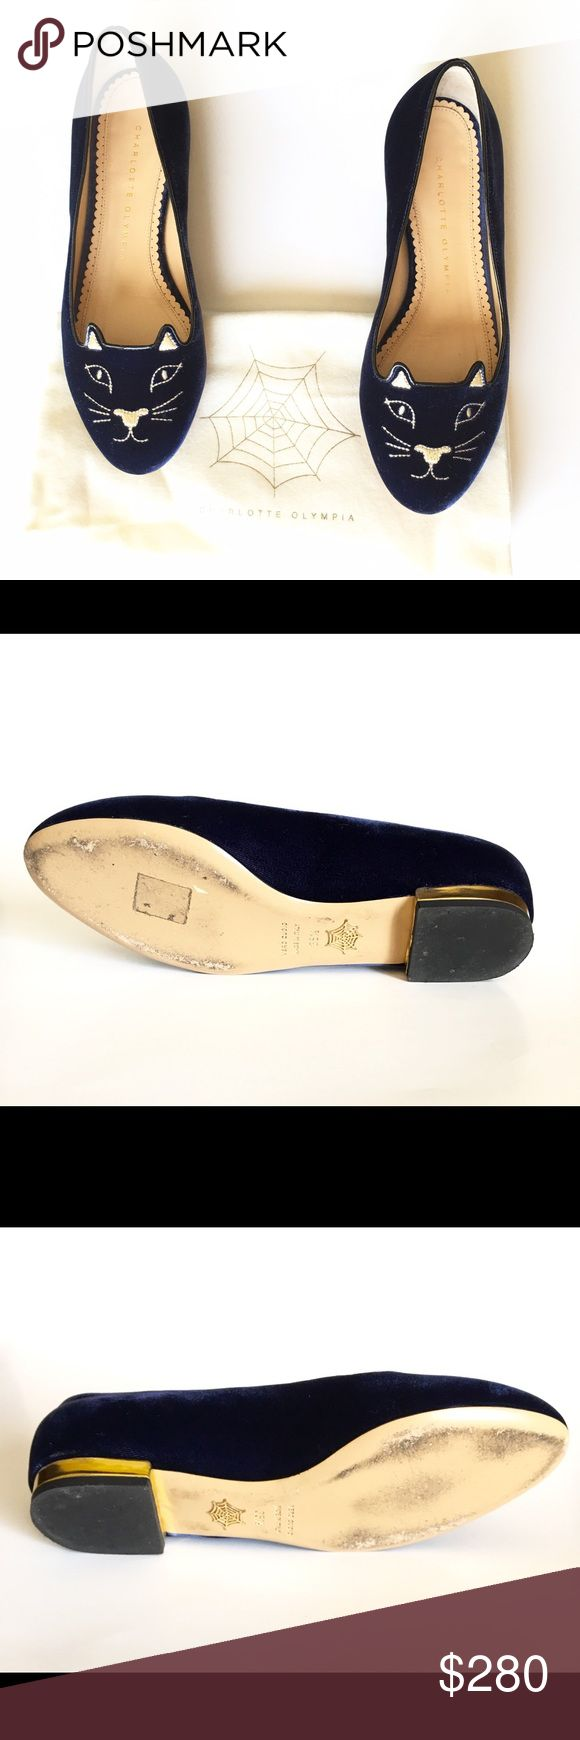 Charlotte Olympia womens kitty flats size 5.5 Charlotte Olympia kitty flats. Preowned soles shoe signs of wear. Comes with box and dustbag  Charlotte Olympia kitty flats  An eye-catching smoking slipper is embroidered at the toe with shining metallic thread in a saucy cat face—while a polished golden heel rand adds an extra kick of gleam. Slip-on style. Leather or textile upper/leather lining and sole. made in Italy.   Kitty flats have been very popular among celebrities and fashion bloggers…